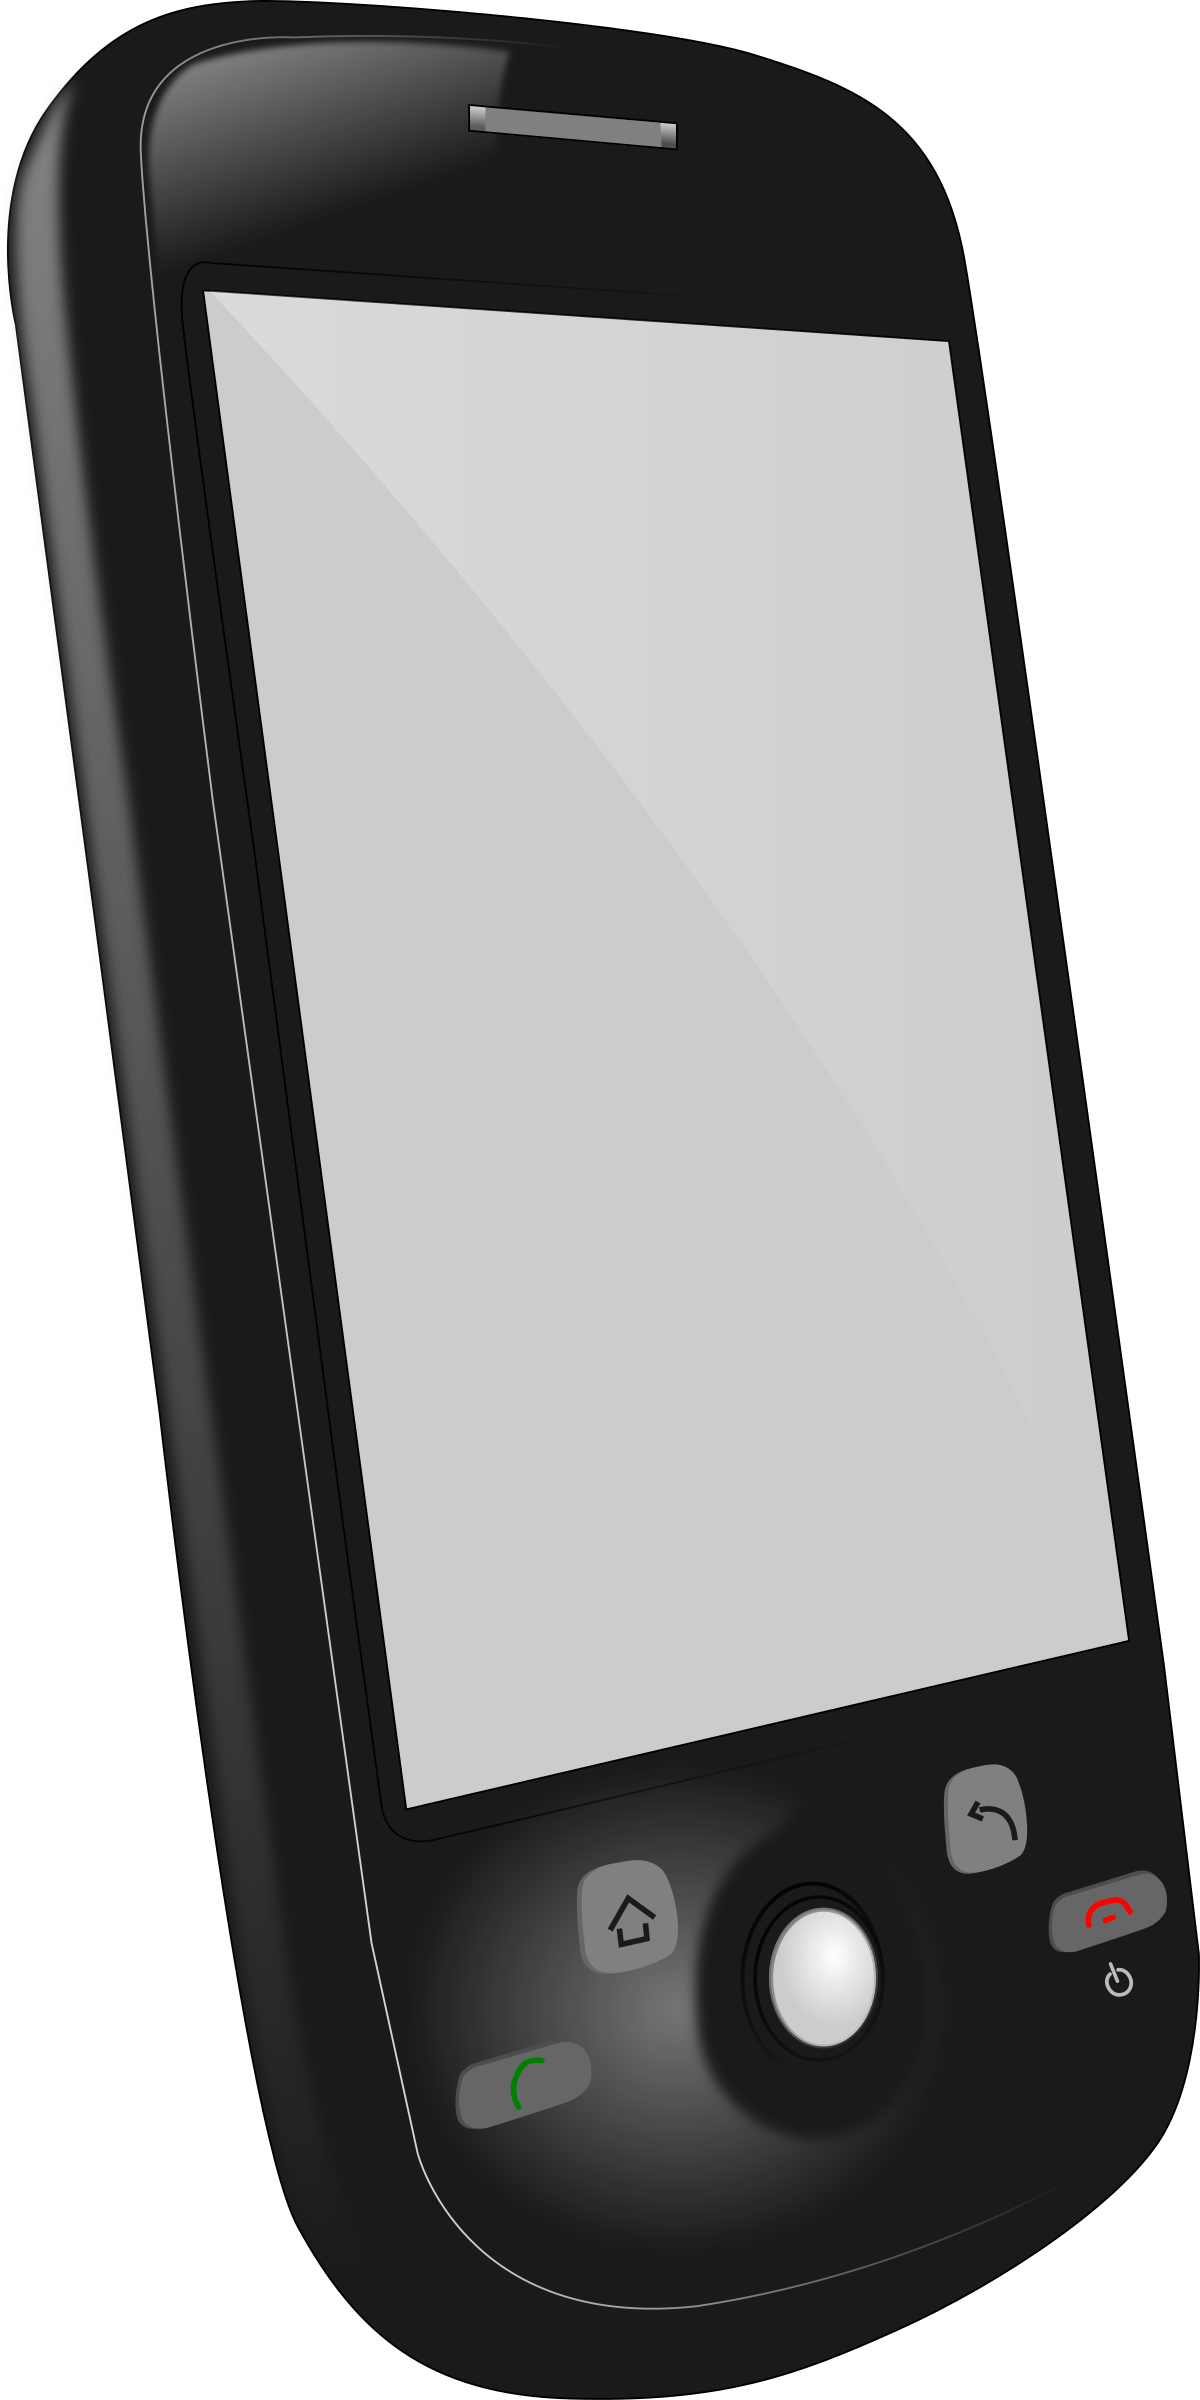 Phone clipart mobile phone. Cell big image png